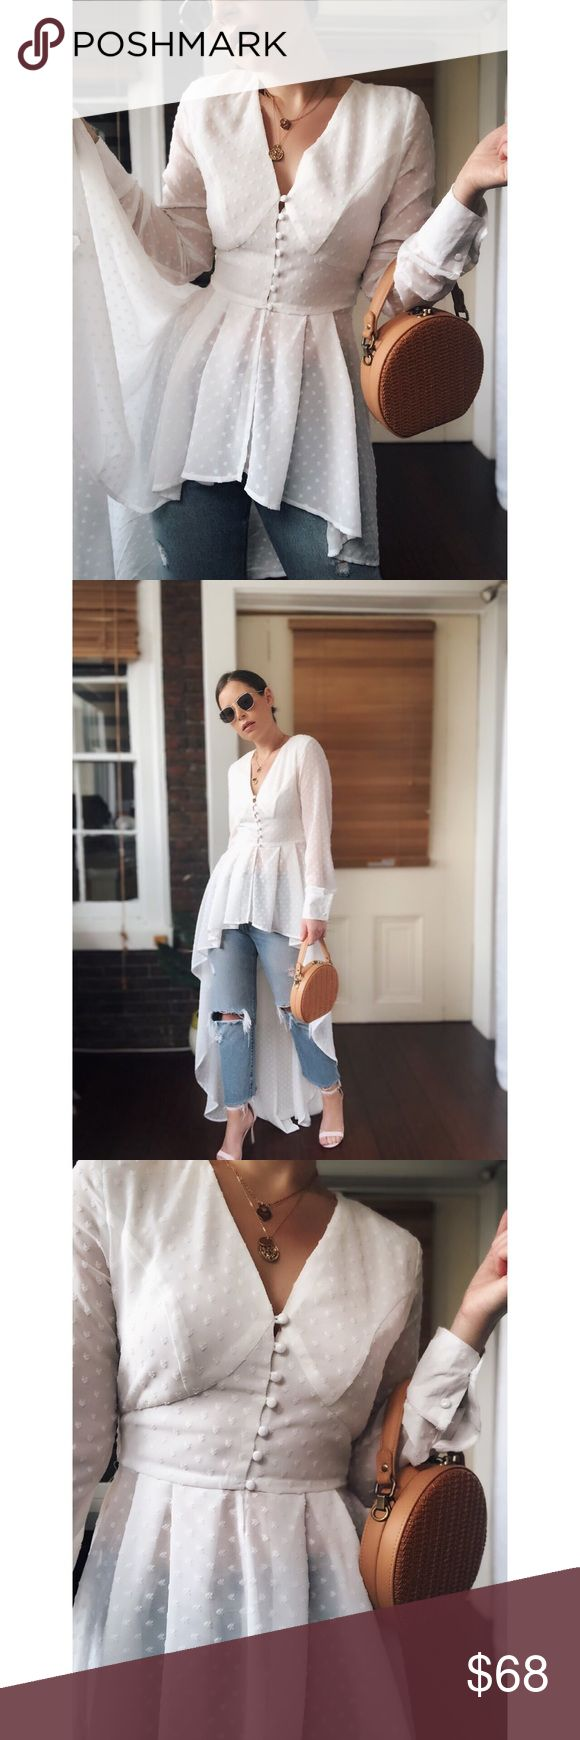 🆕1st Date White High Low Duster Top New Boutique Item. The 1st Date Top features a high low silhouette, sheer sleeve detailing, button down front, …